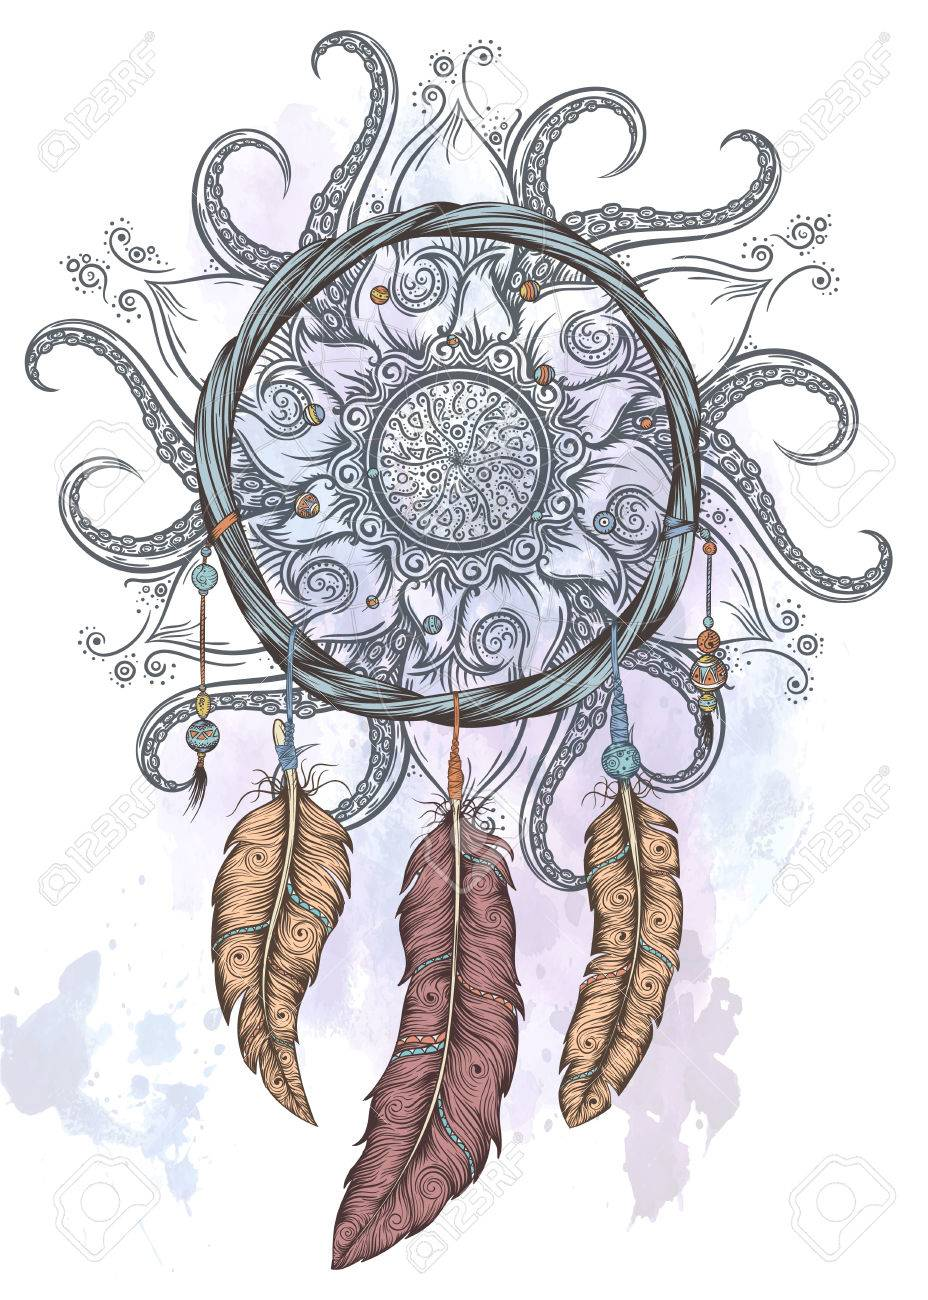 Dream catcher hand drawn vector illustration with abstract mandala. - 58393191